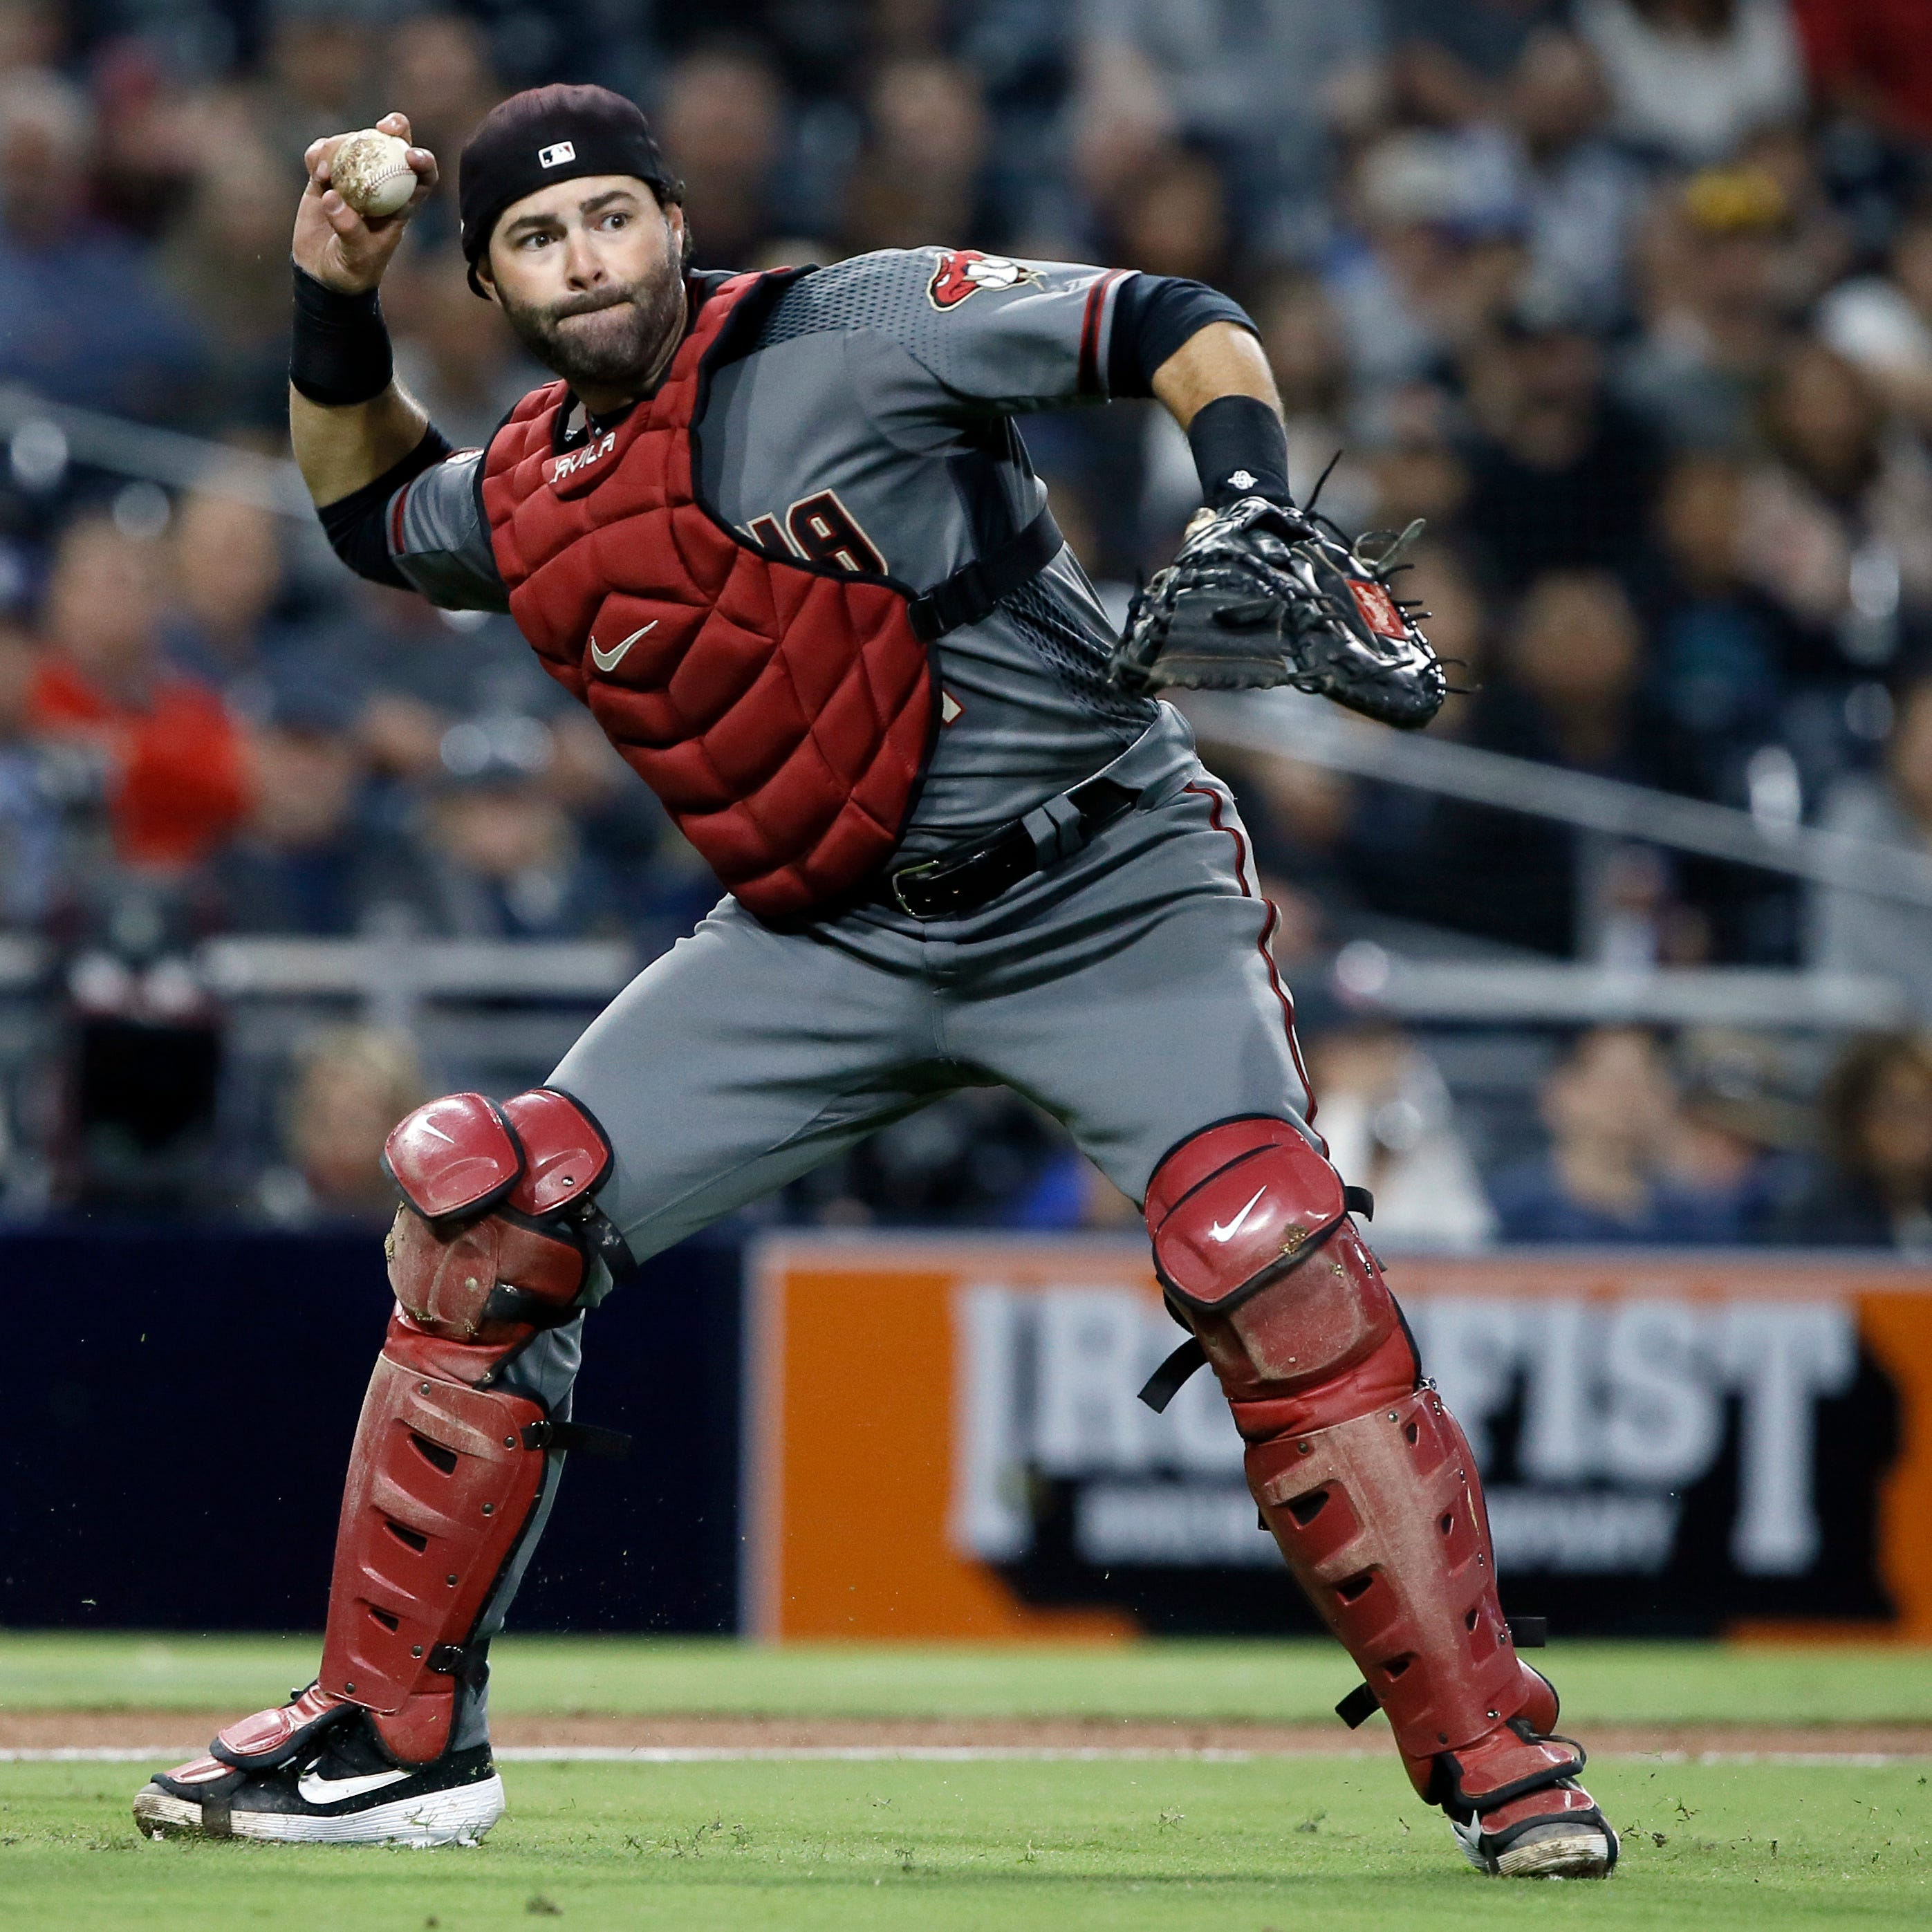 Arizona Diamondbacks have roster decisions in wake of Alex Avila injury